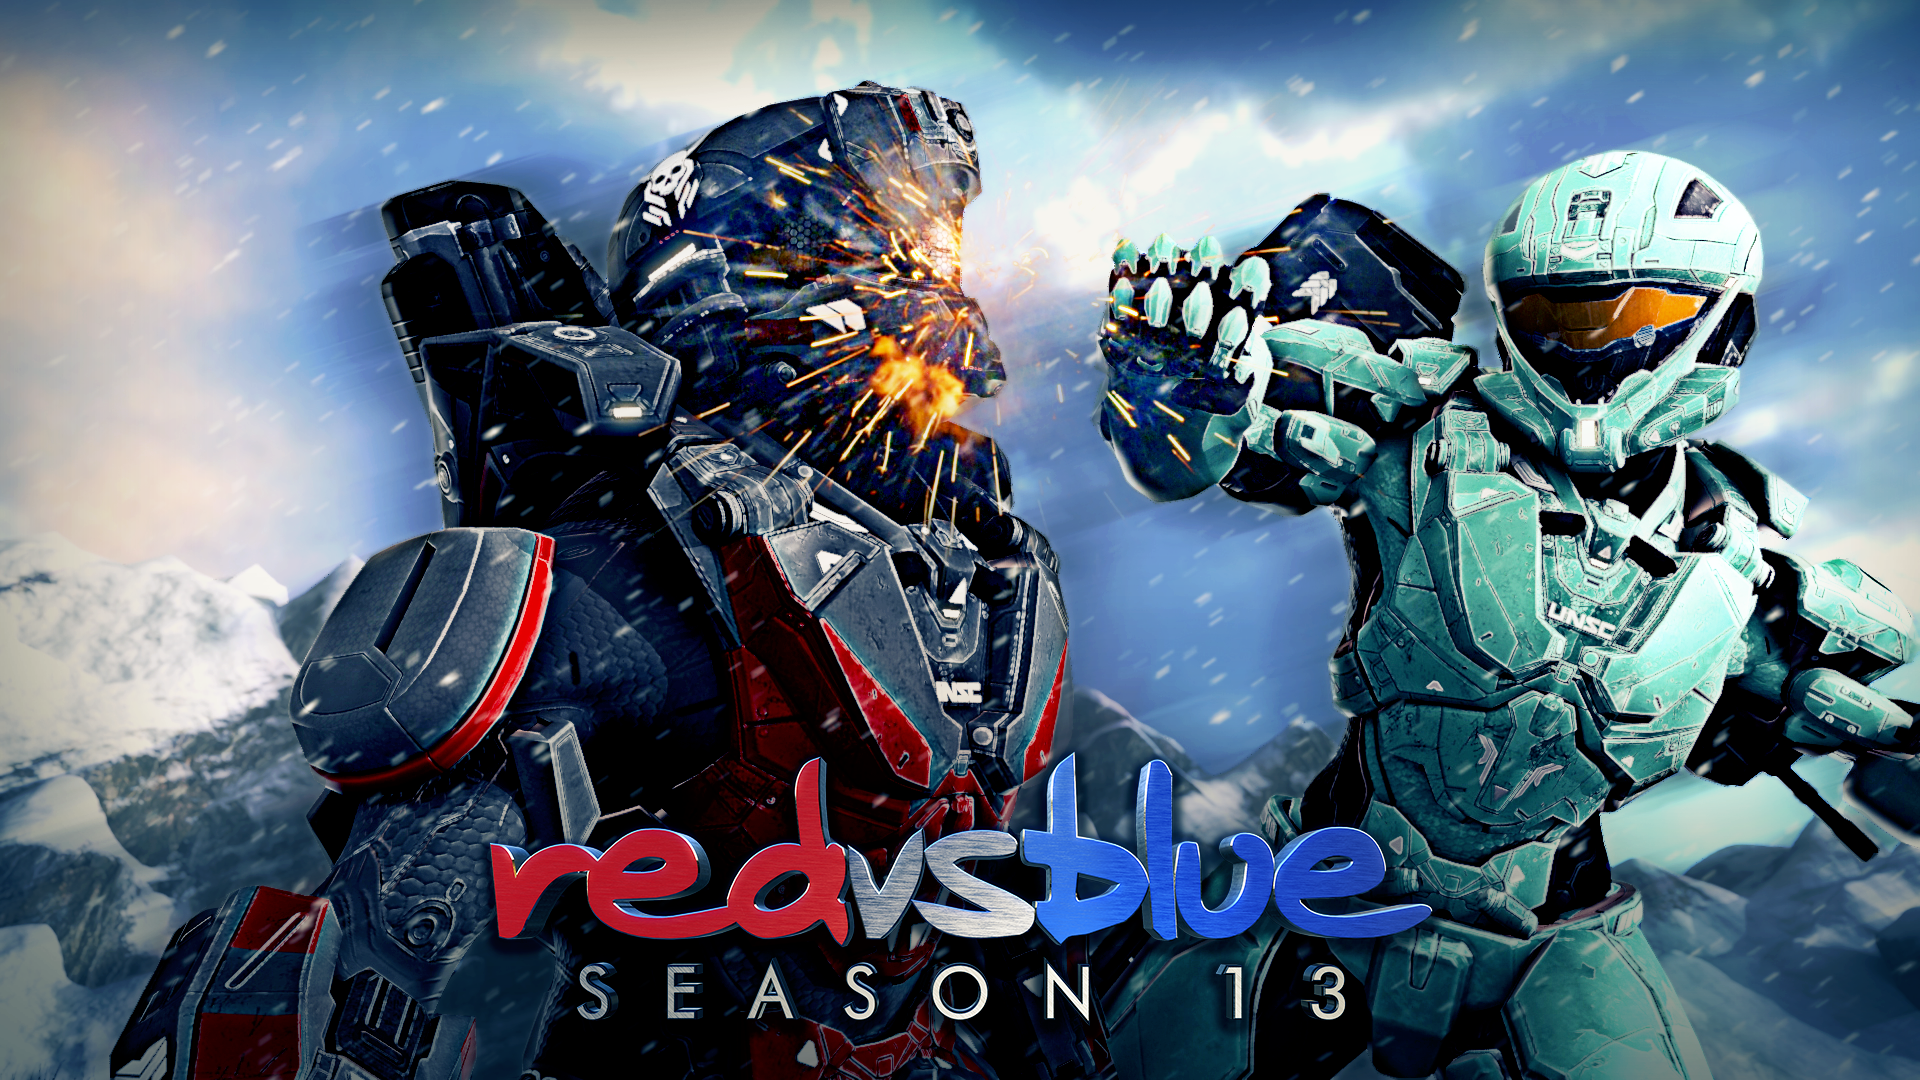 Free Download Hd Red Vs Blue Wallpapers 1920x1080 For Your